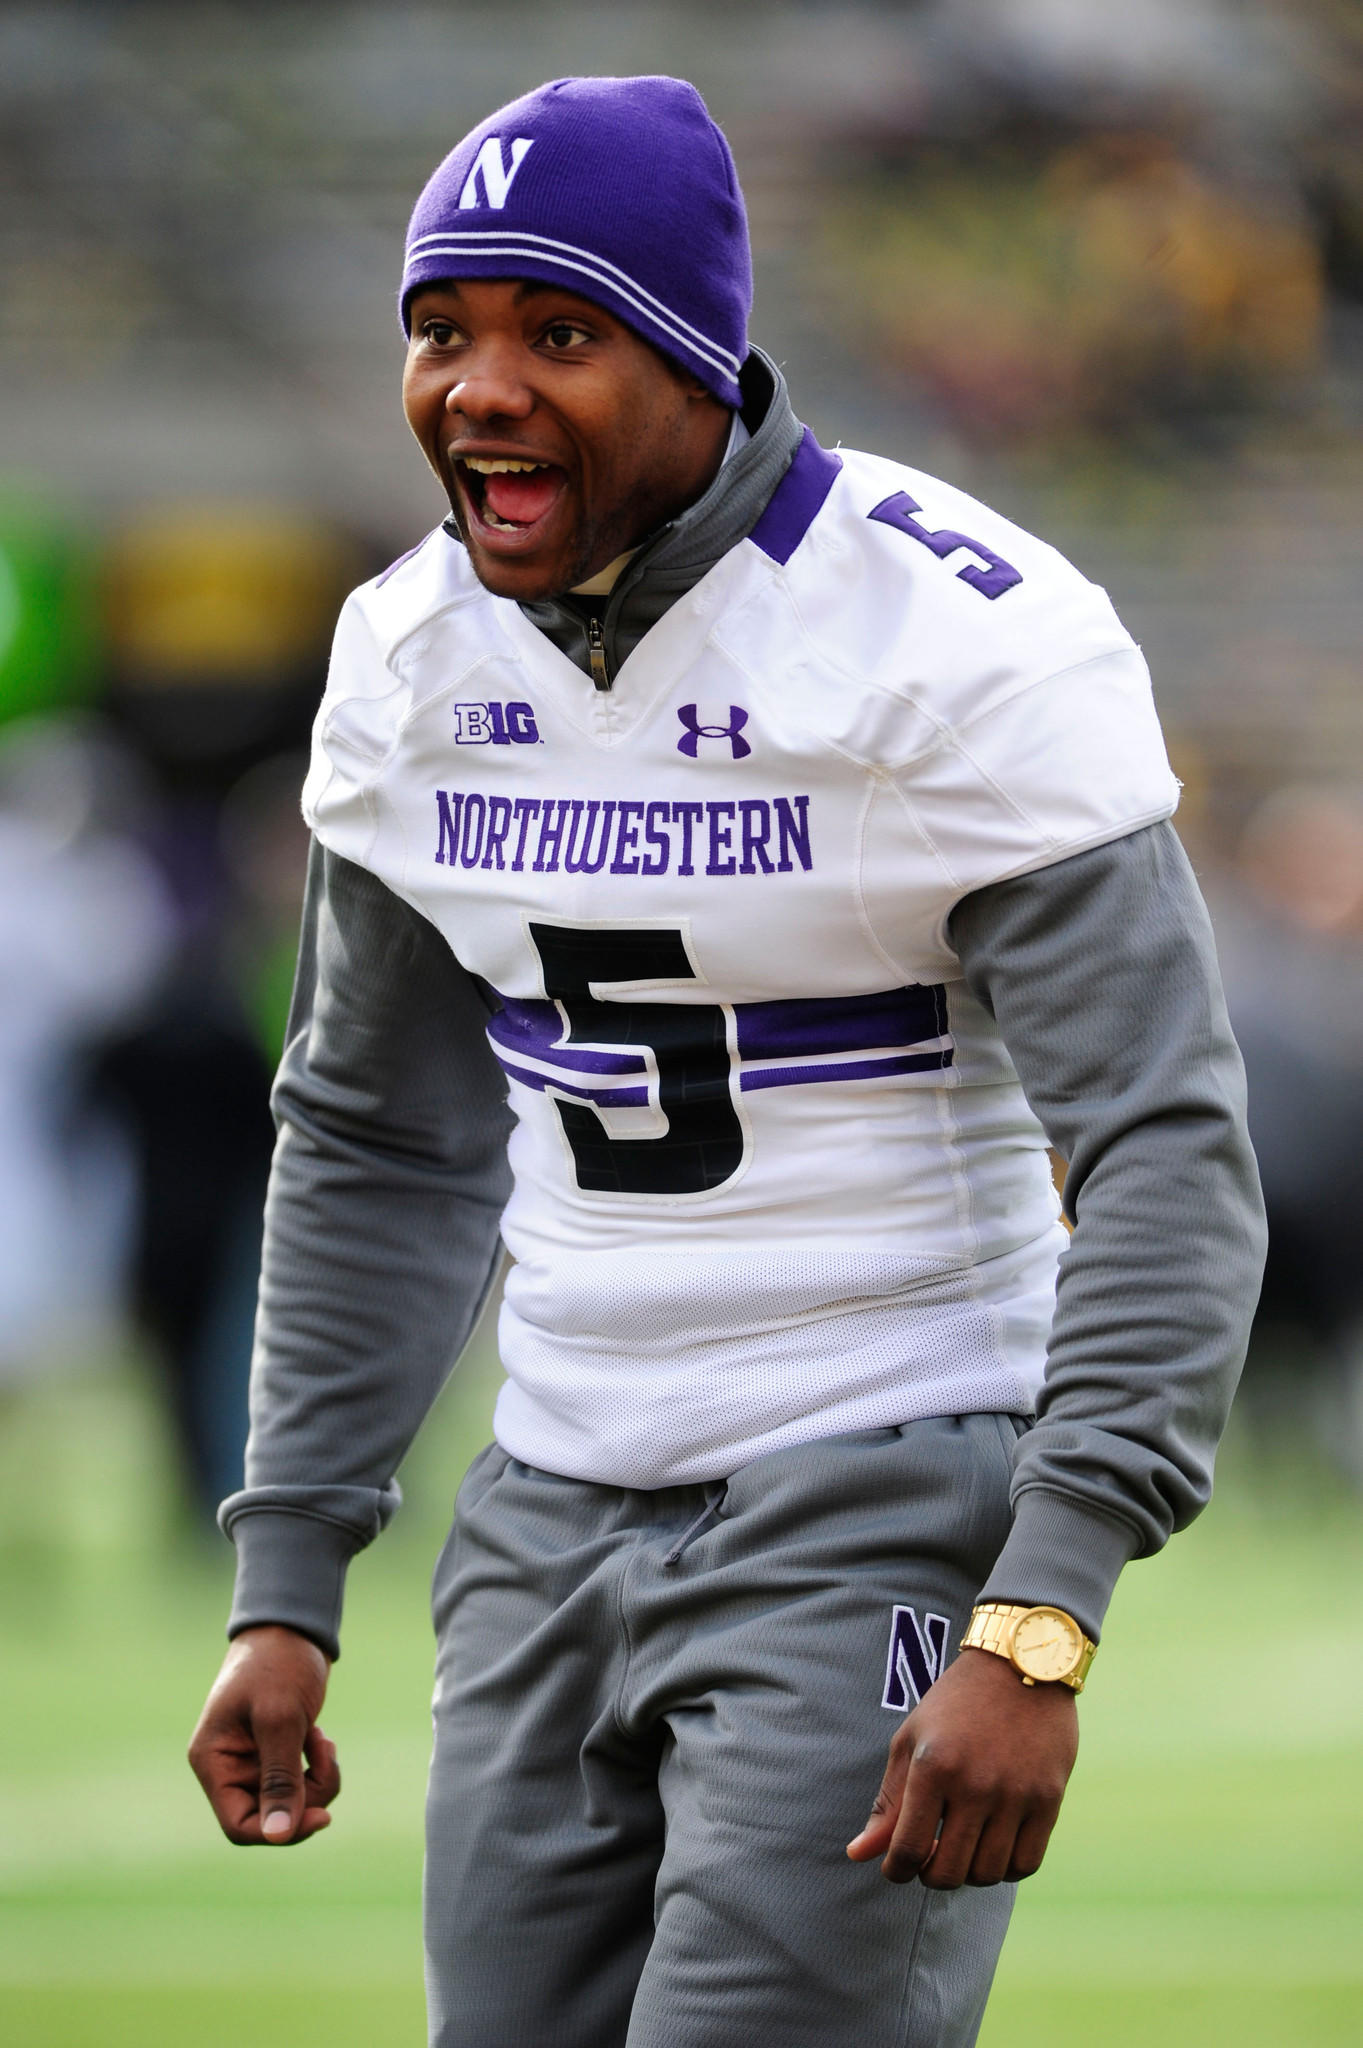 Northwestern running back Venric Mark.